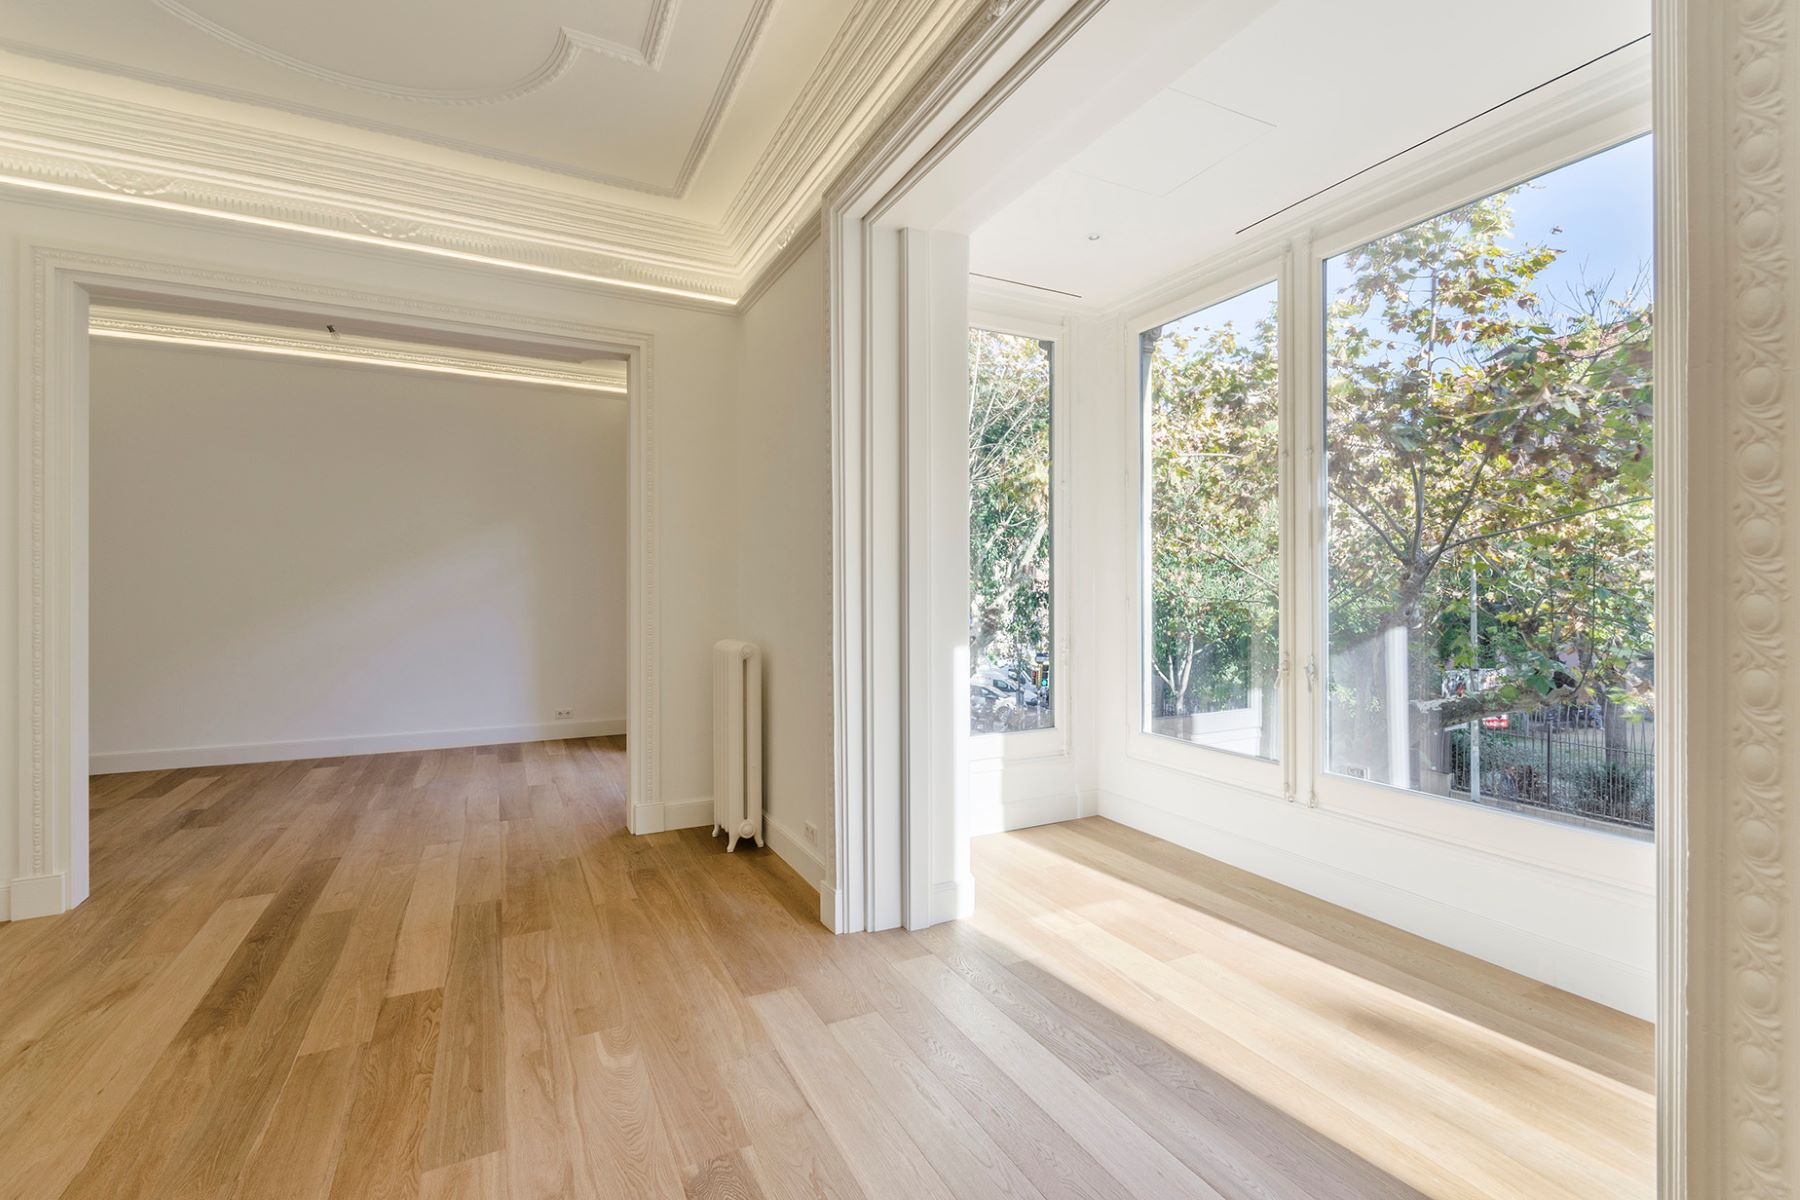 Apartment for Sale at Extraordinary Apartment in the Eixample district Barcelona City, Barcelona, 08007 Spain